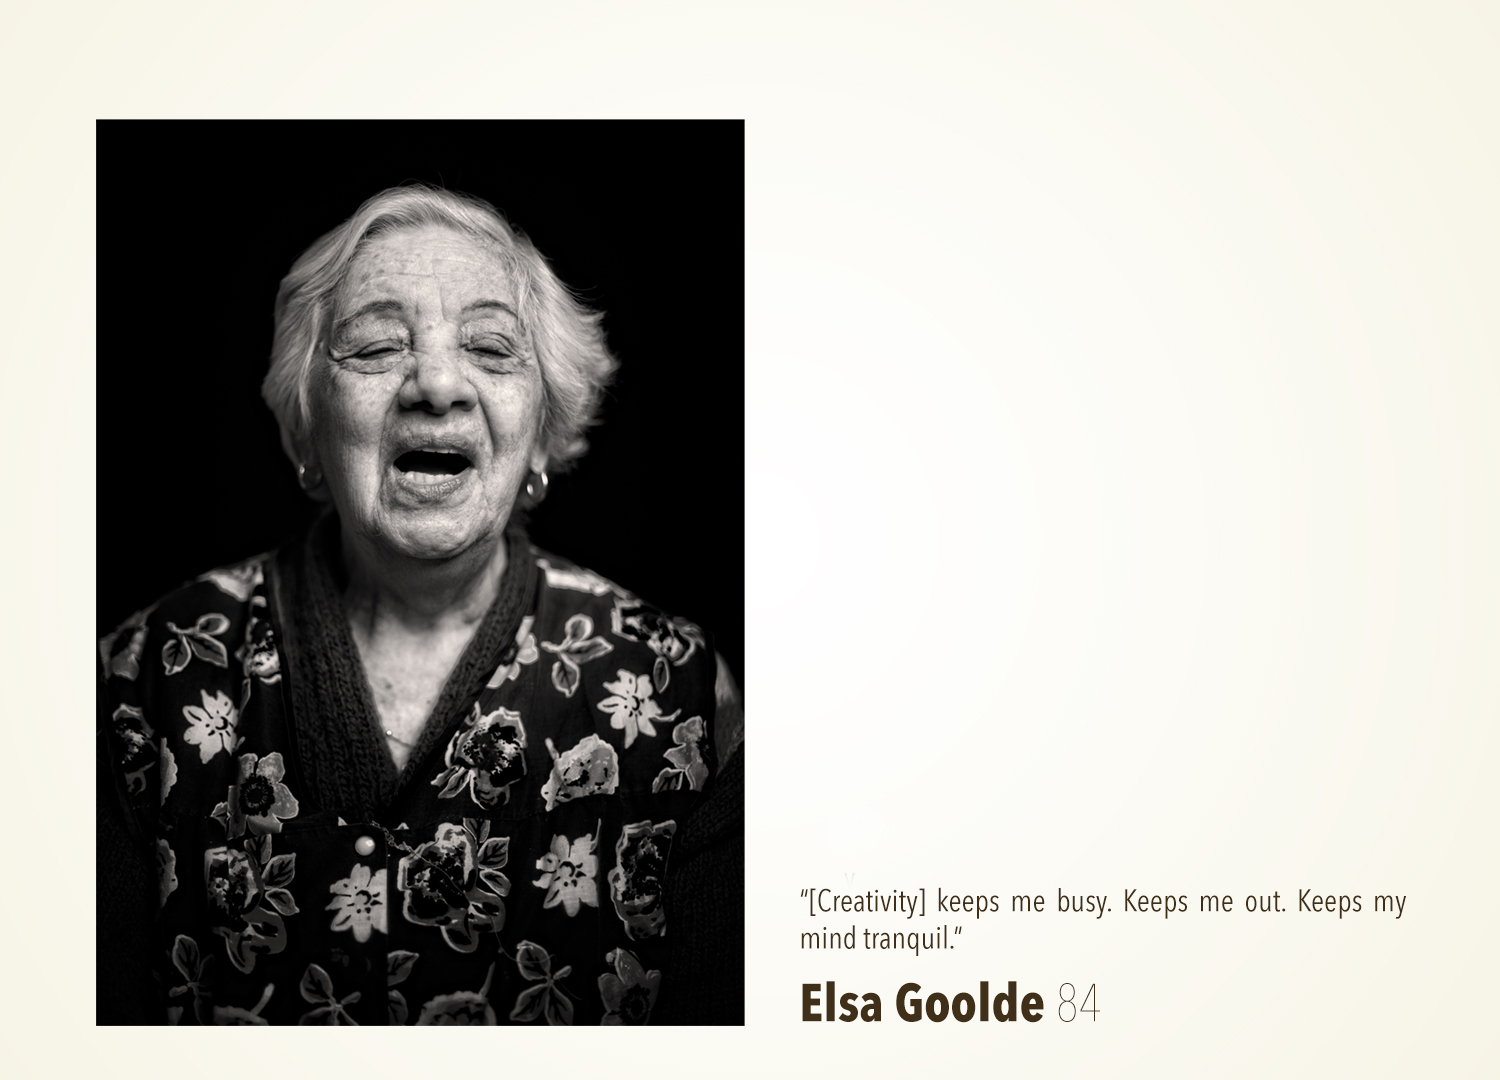 image plus text 0002 Elsa Goolde